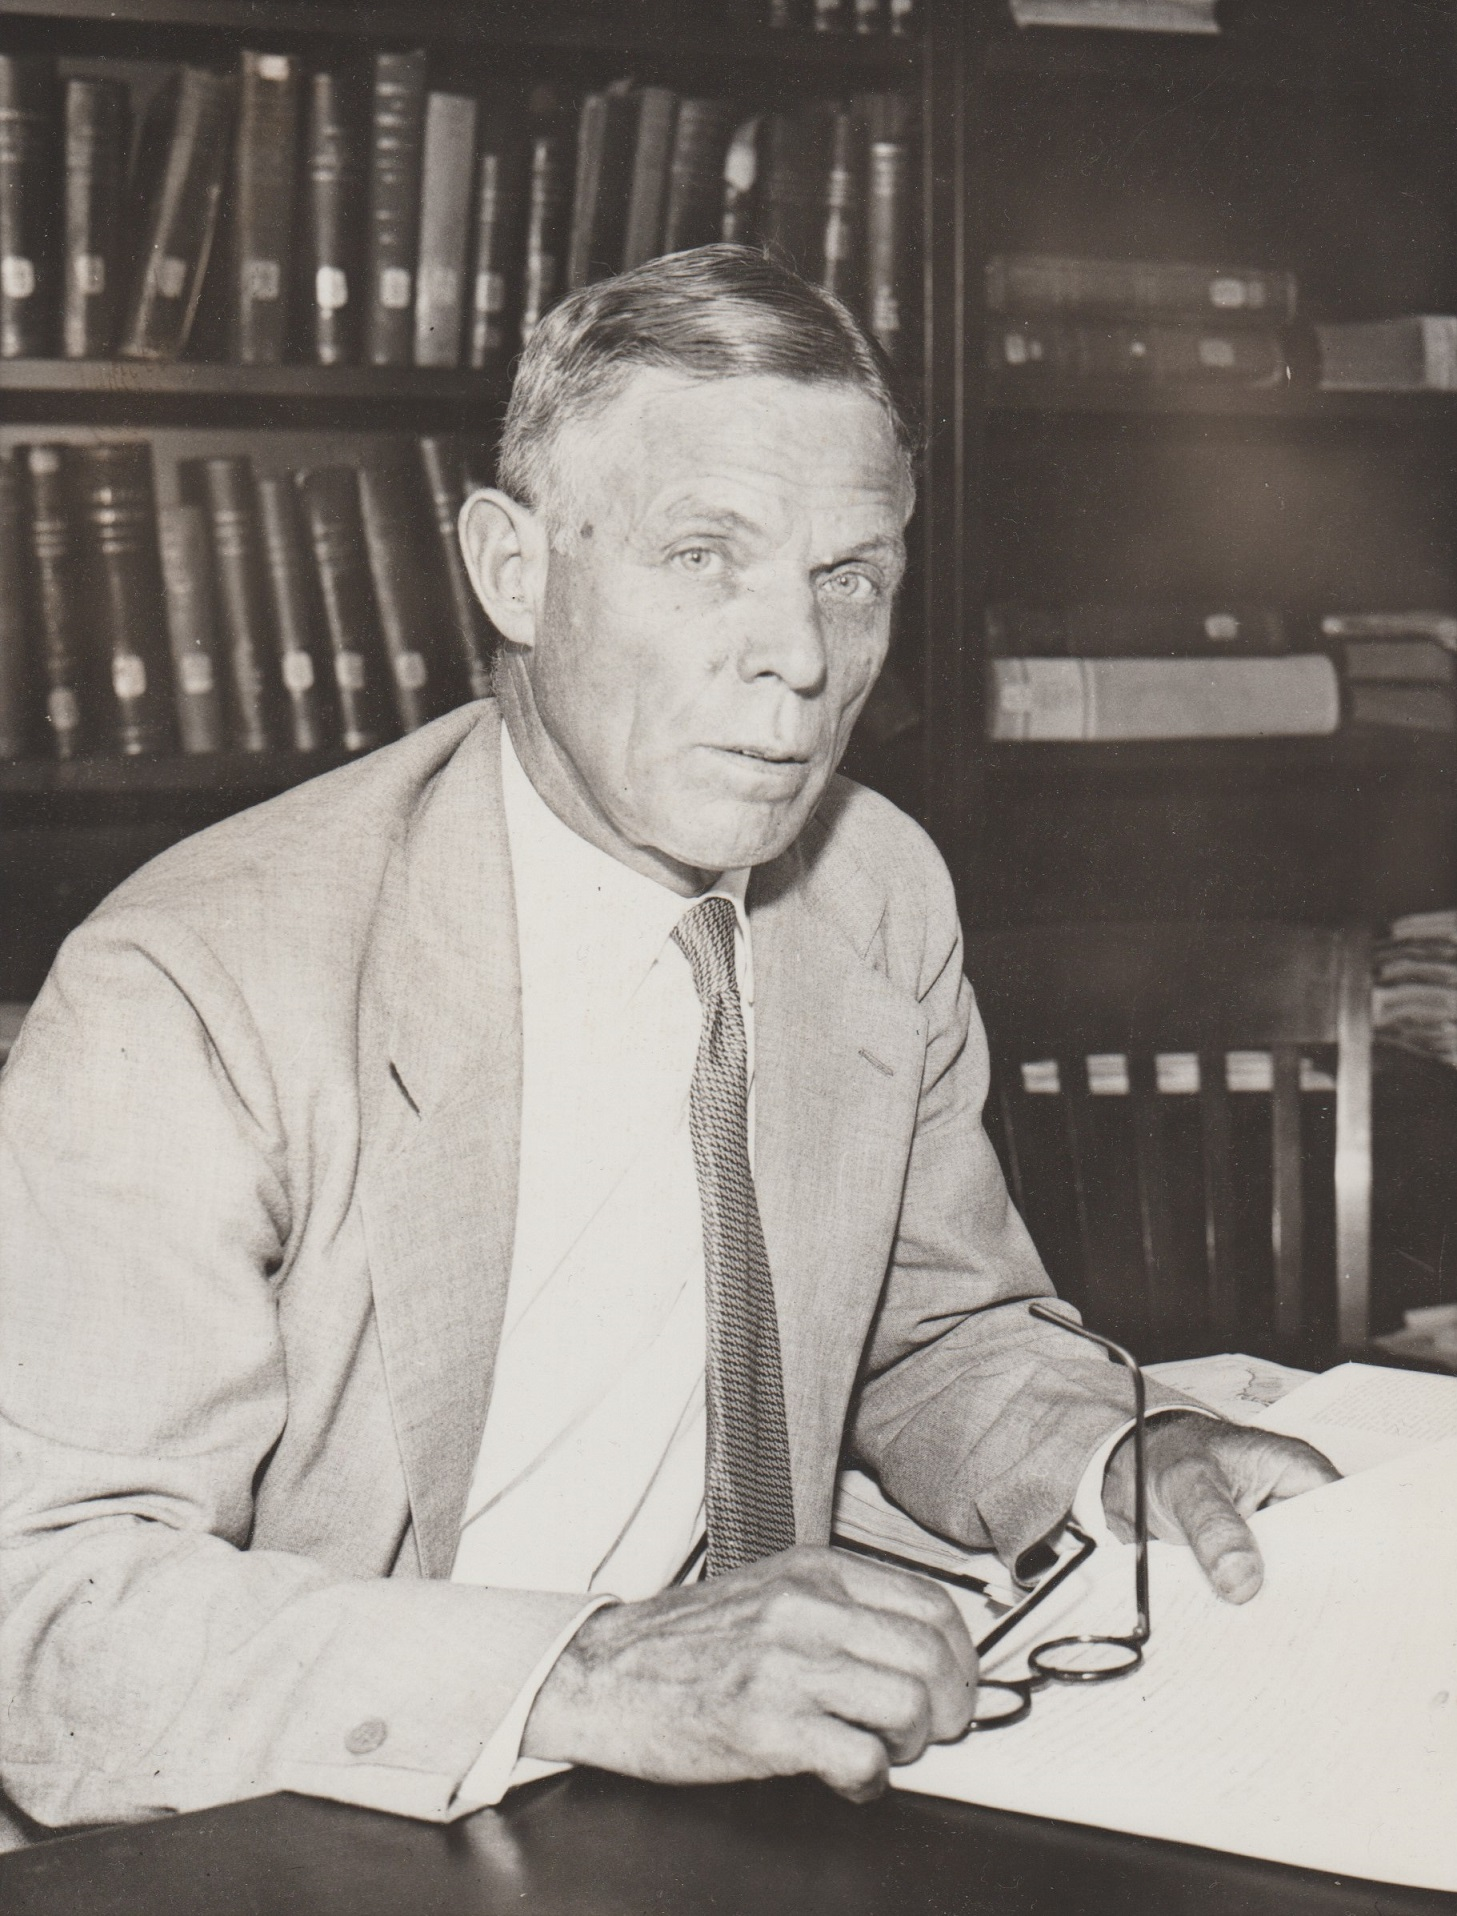 Dodd in 1933 as a professor at the University of Chicago, shortly after his nomination to be Ambassador to Germany.  International News Photos photograph.